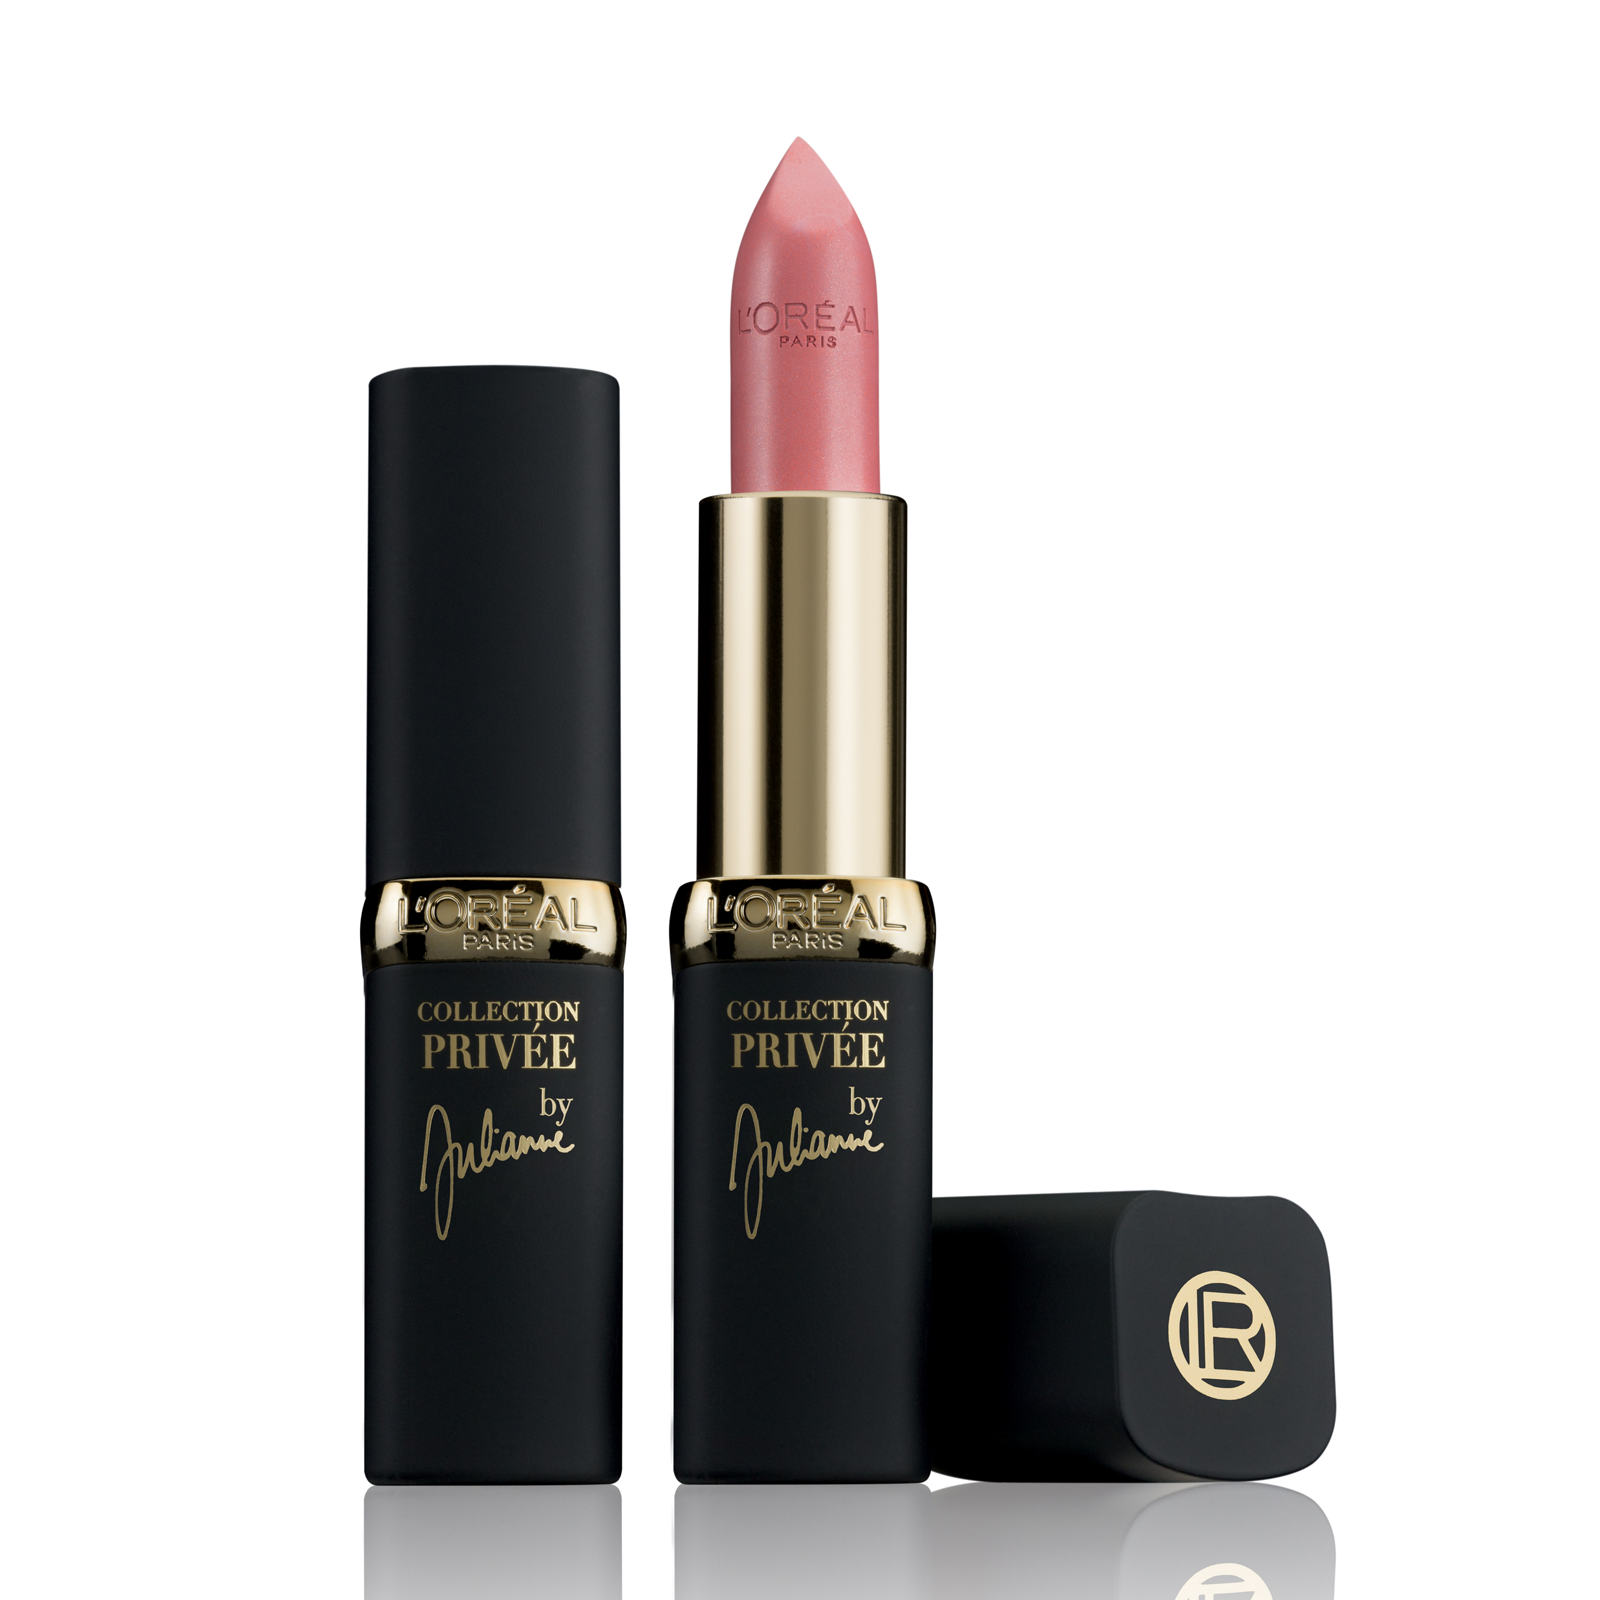 Loreal color caresse by color rich lipstick - Limited Edition Of Tailor Made Nude Lip Look Shades For Every Skin Tone Custom